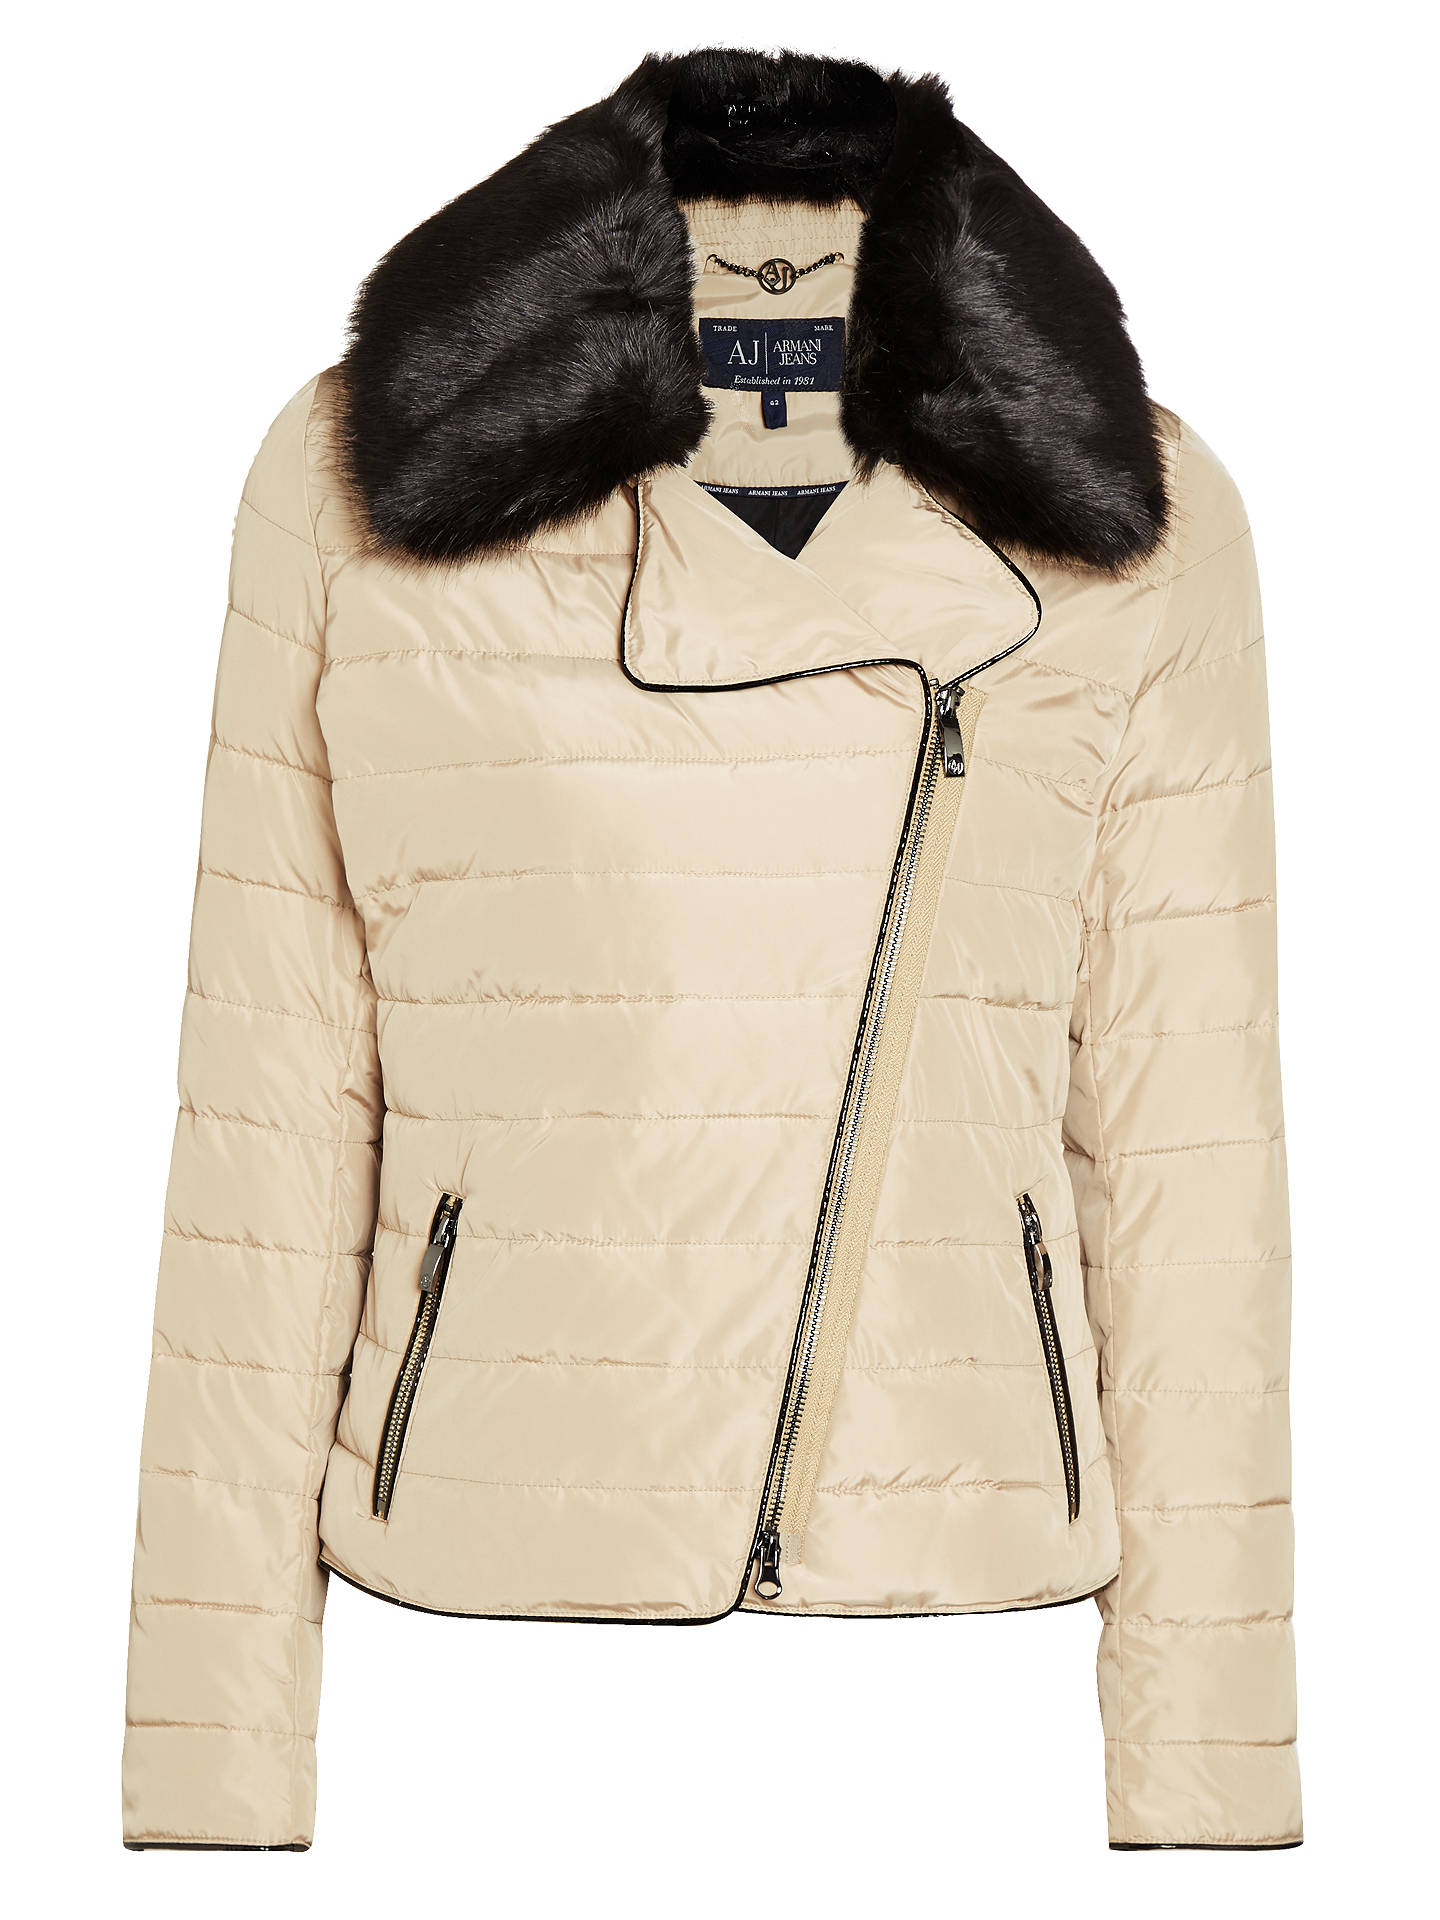 8bd786955d Armani Jeans Faux Fur Collar Quilted Jacket, Beige at John Lewis ...